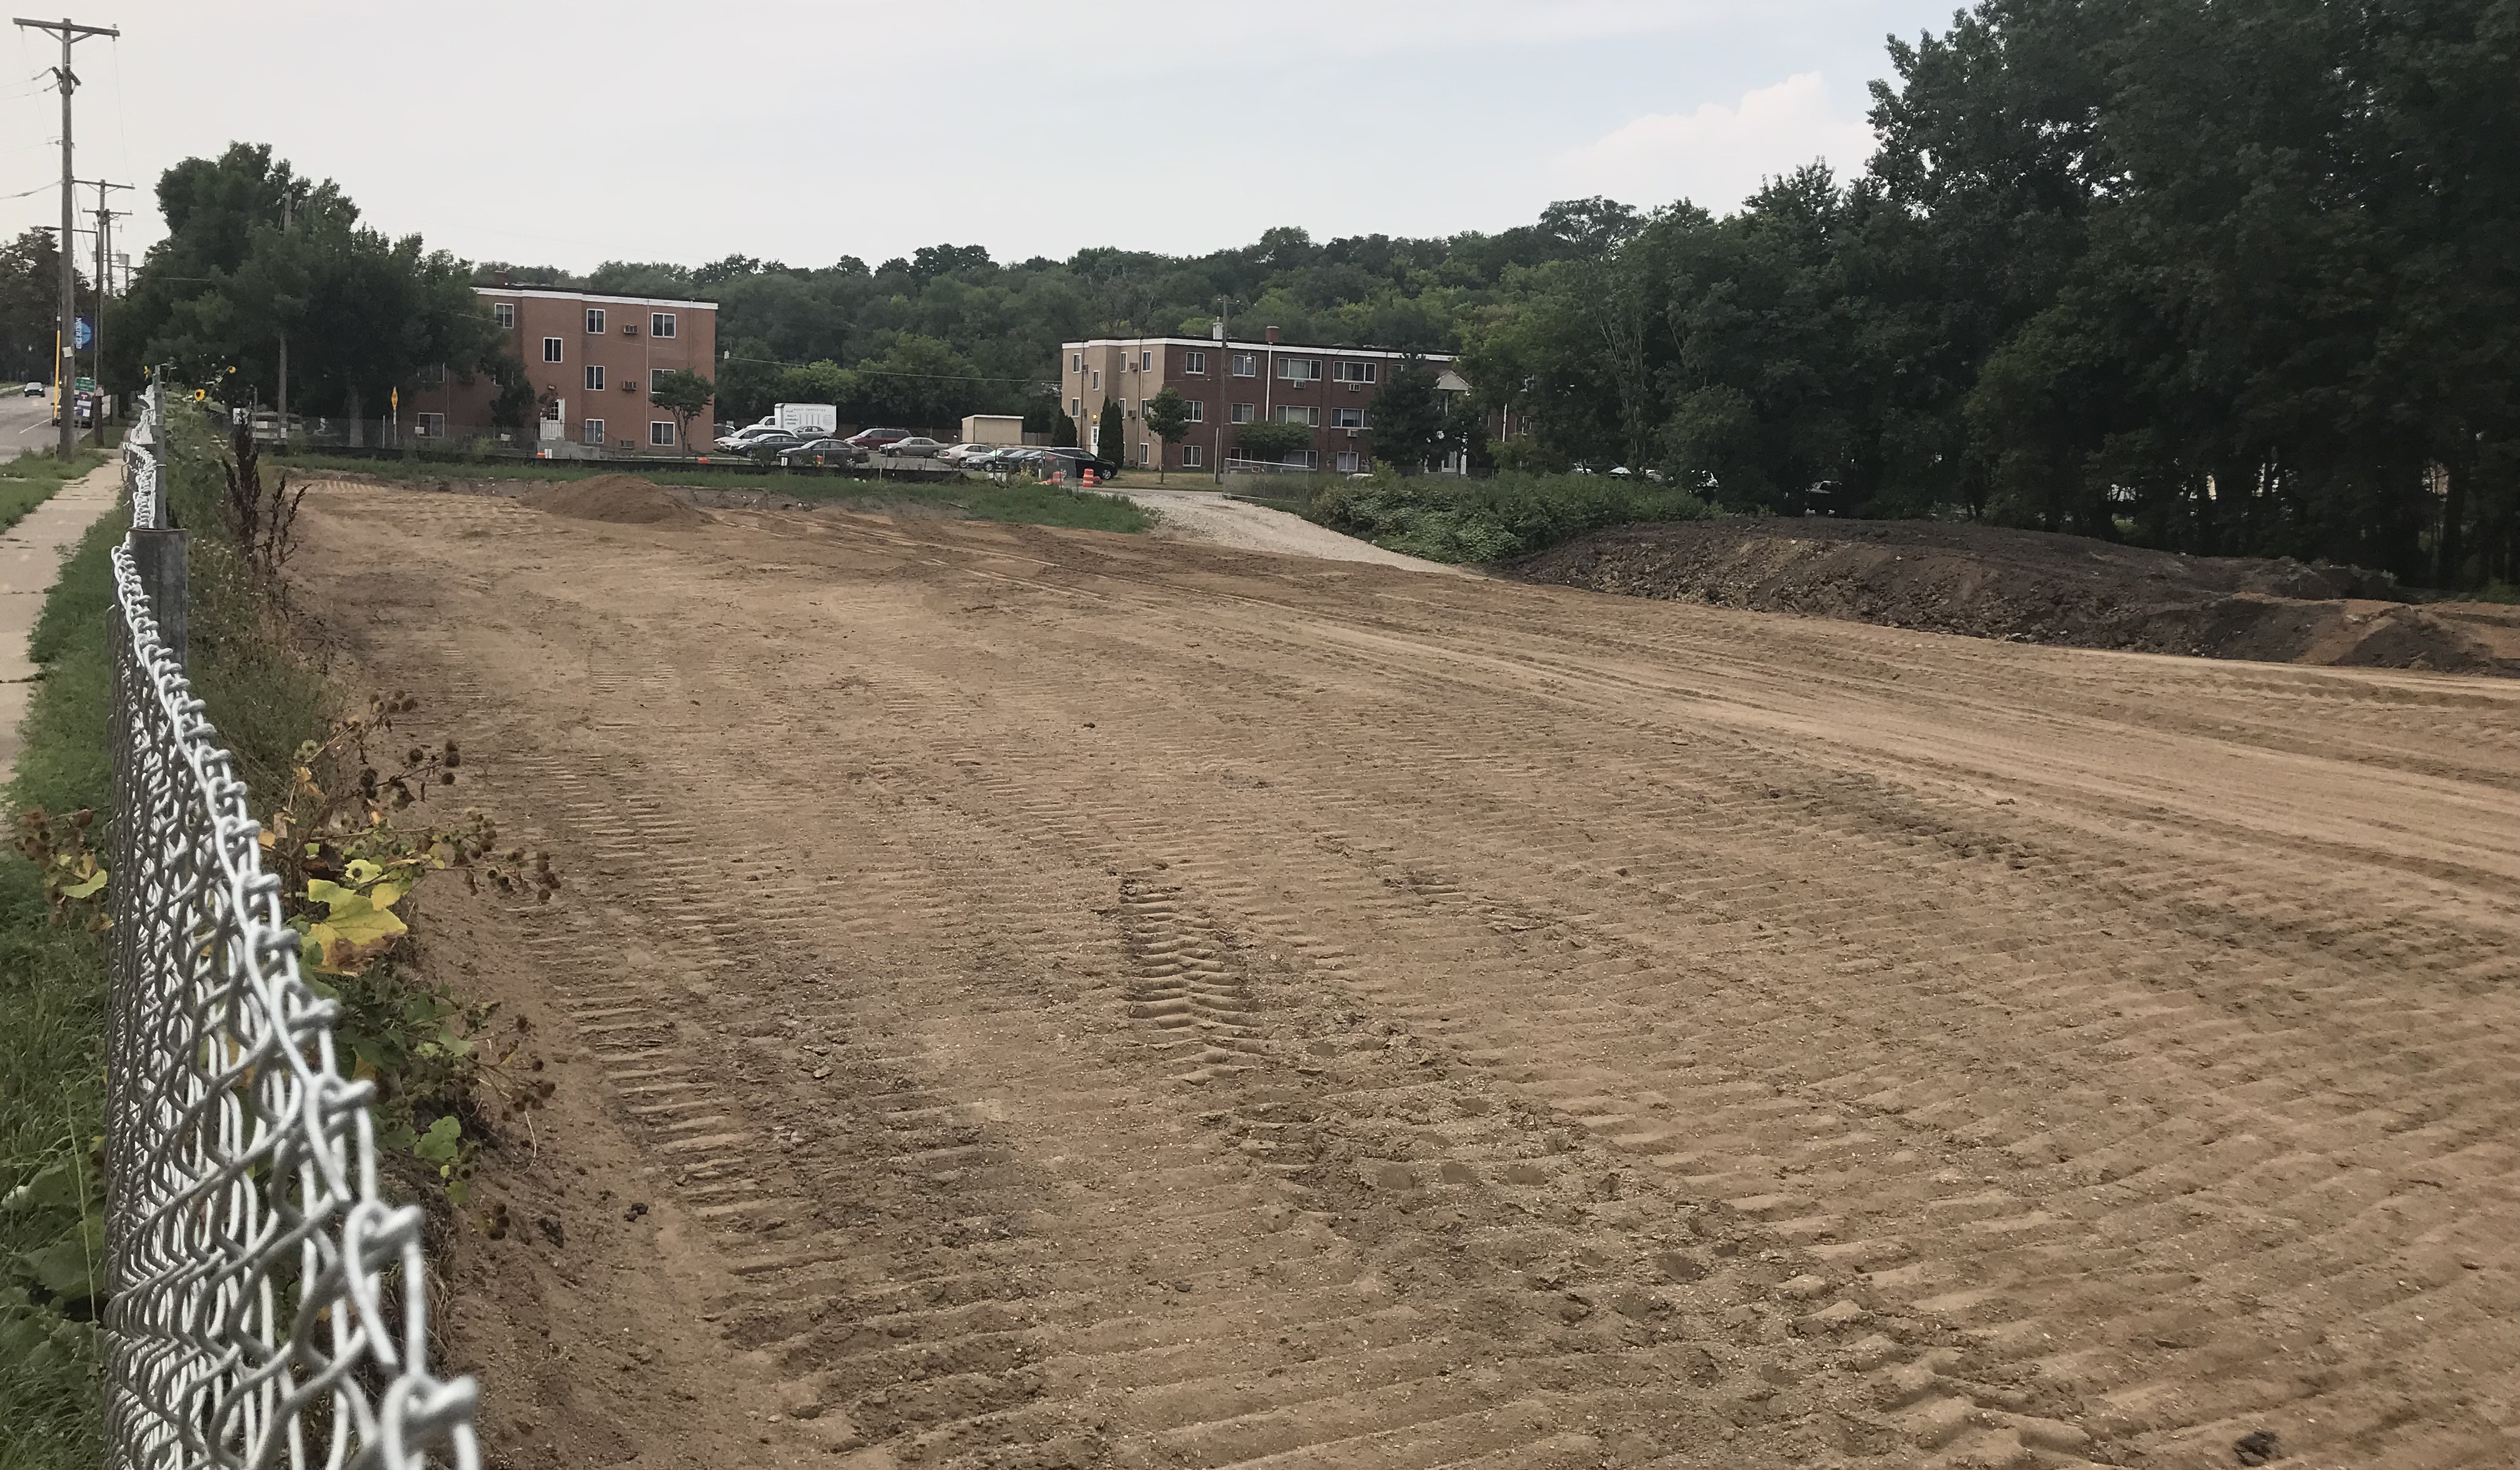 Maryland Ave site Sept 2018